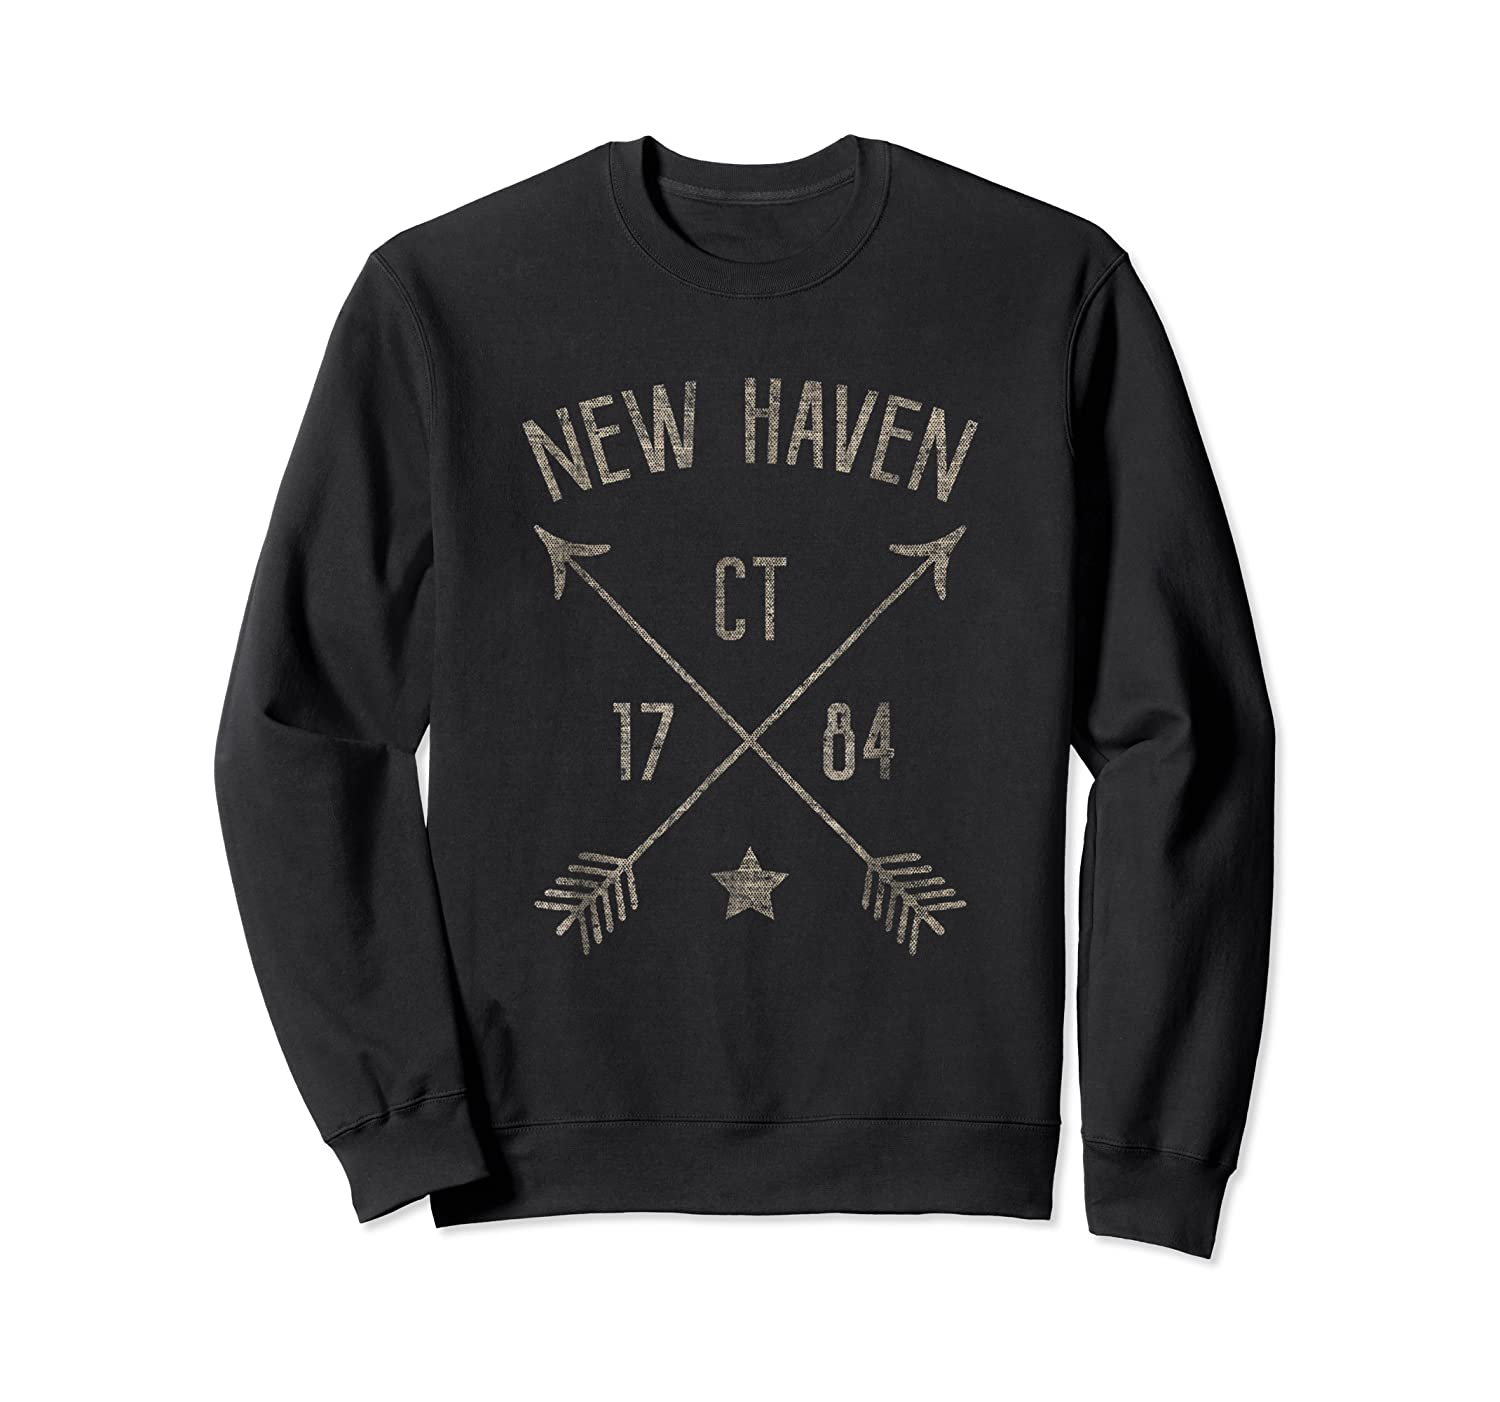 New Haven Ct T Shirt Cool Vintage Retro Style Home City Crewneck Sweater